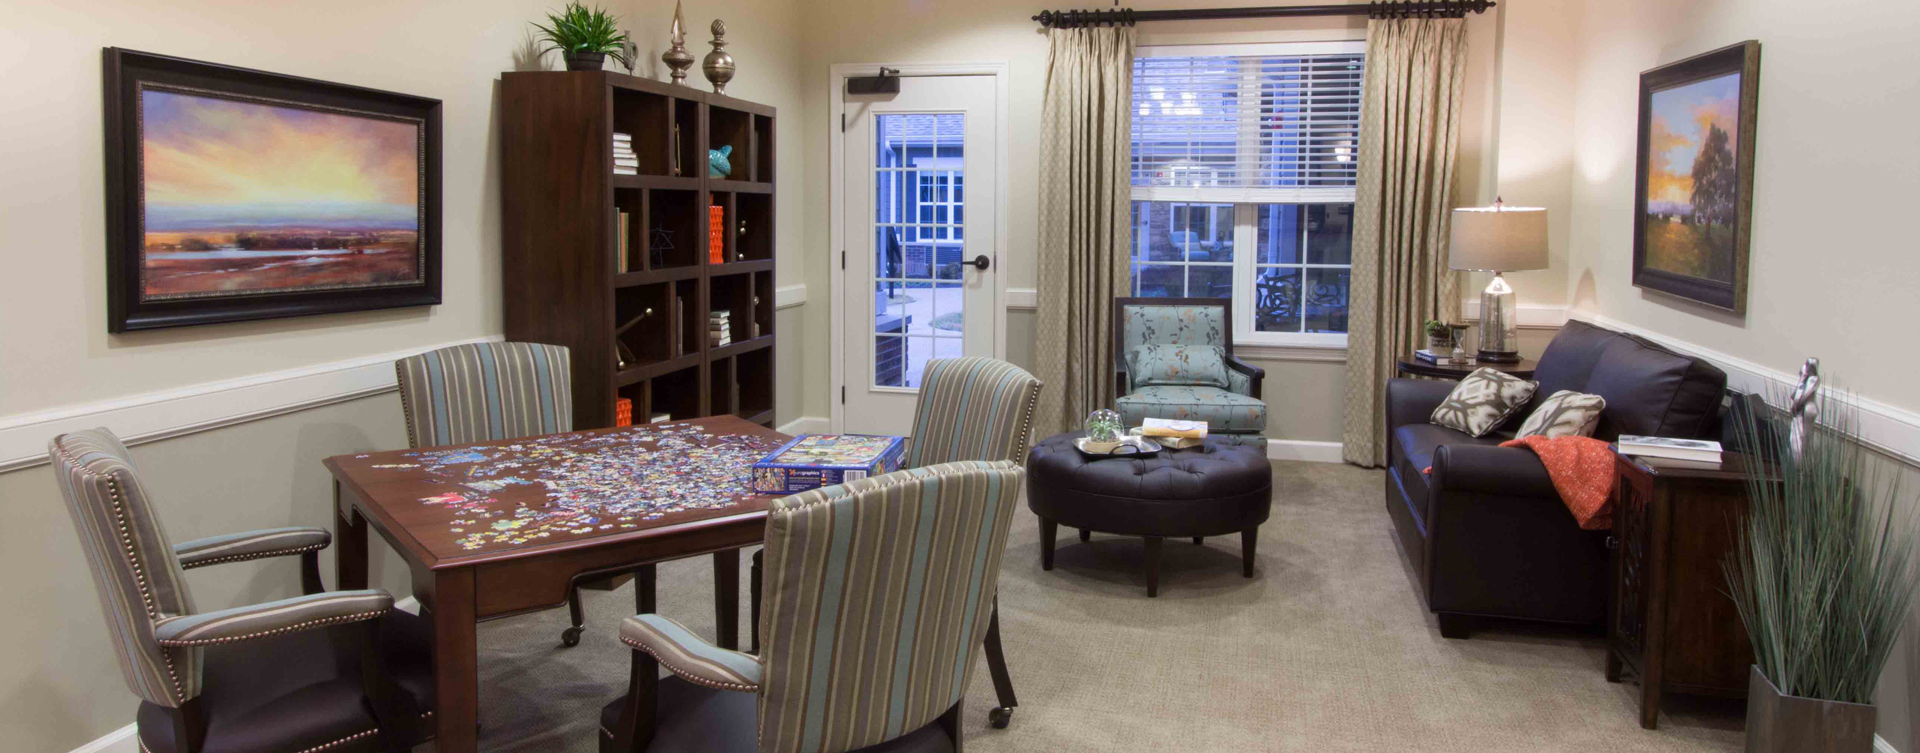 Enjoy a good book in the sitting area at Bickford of Gurnee